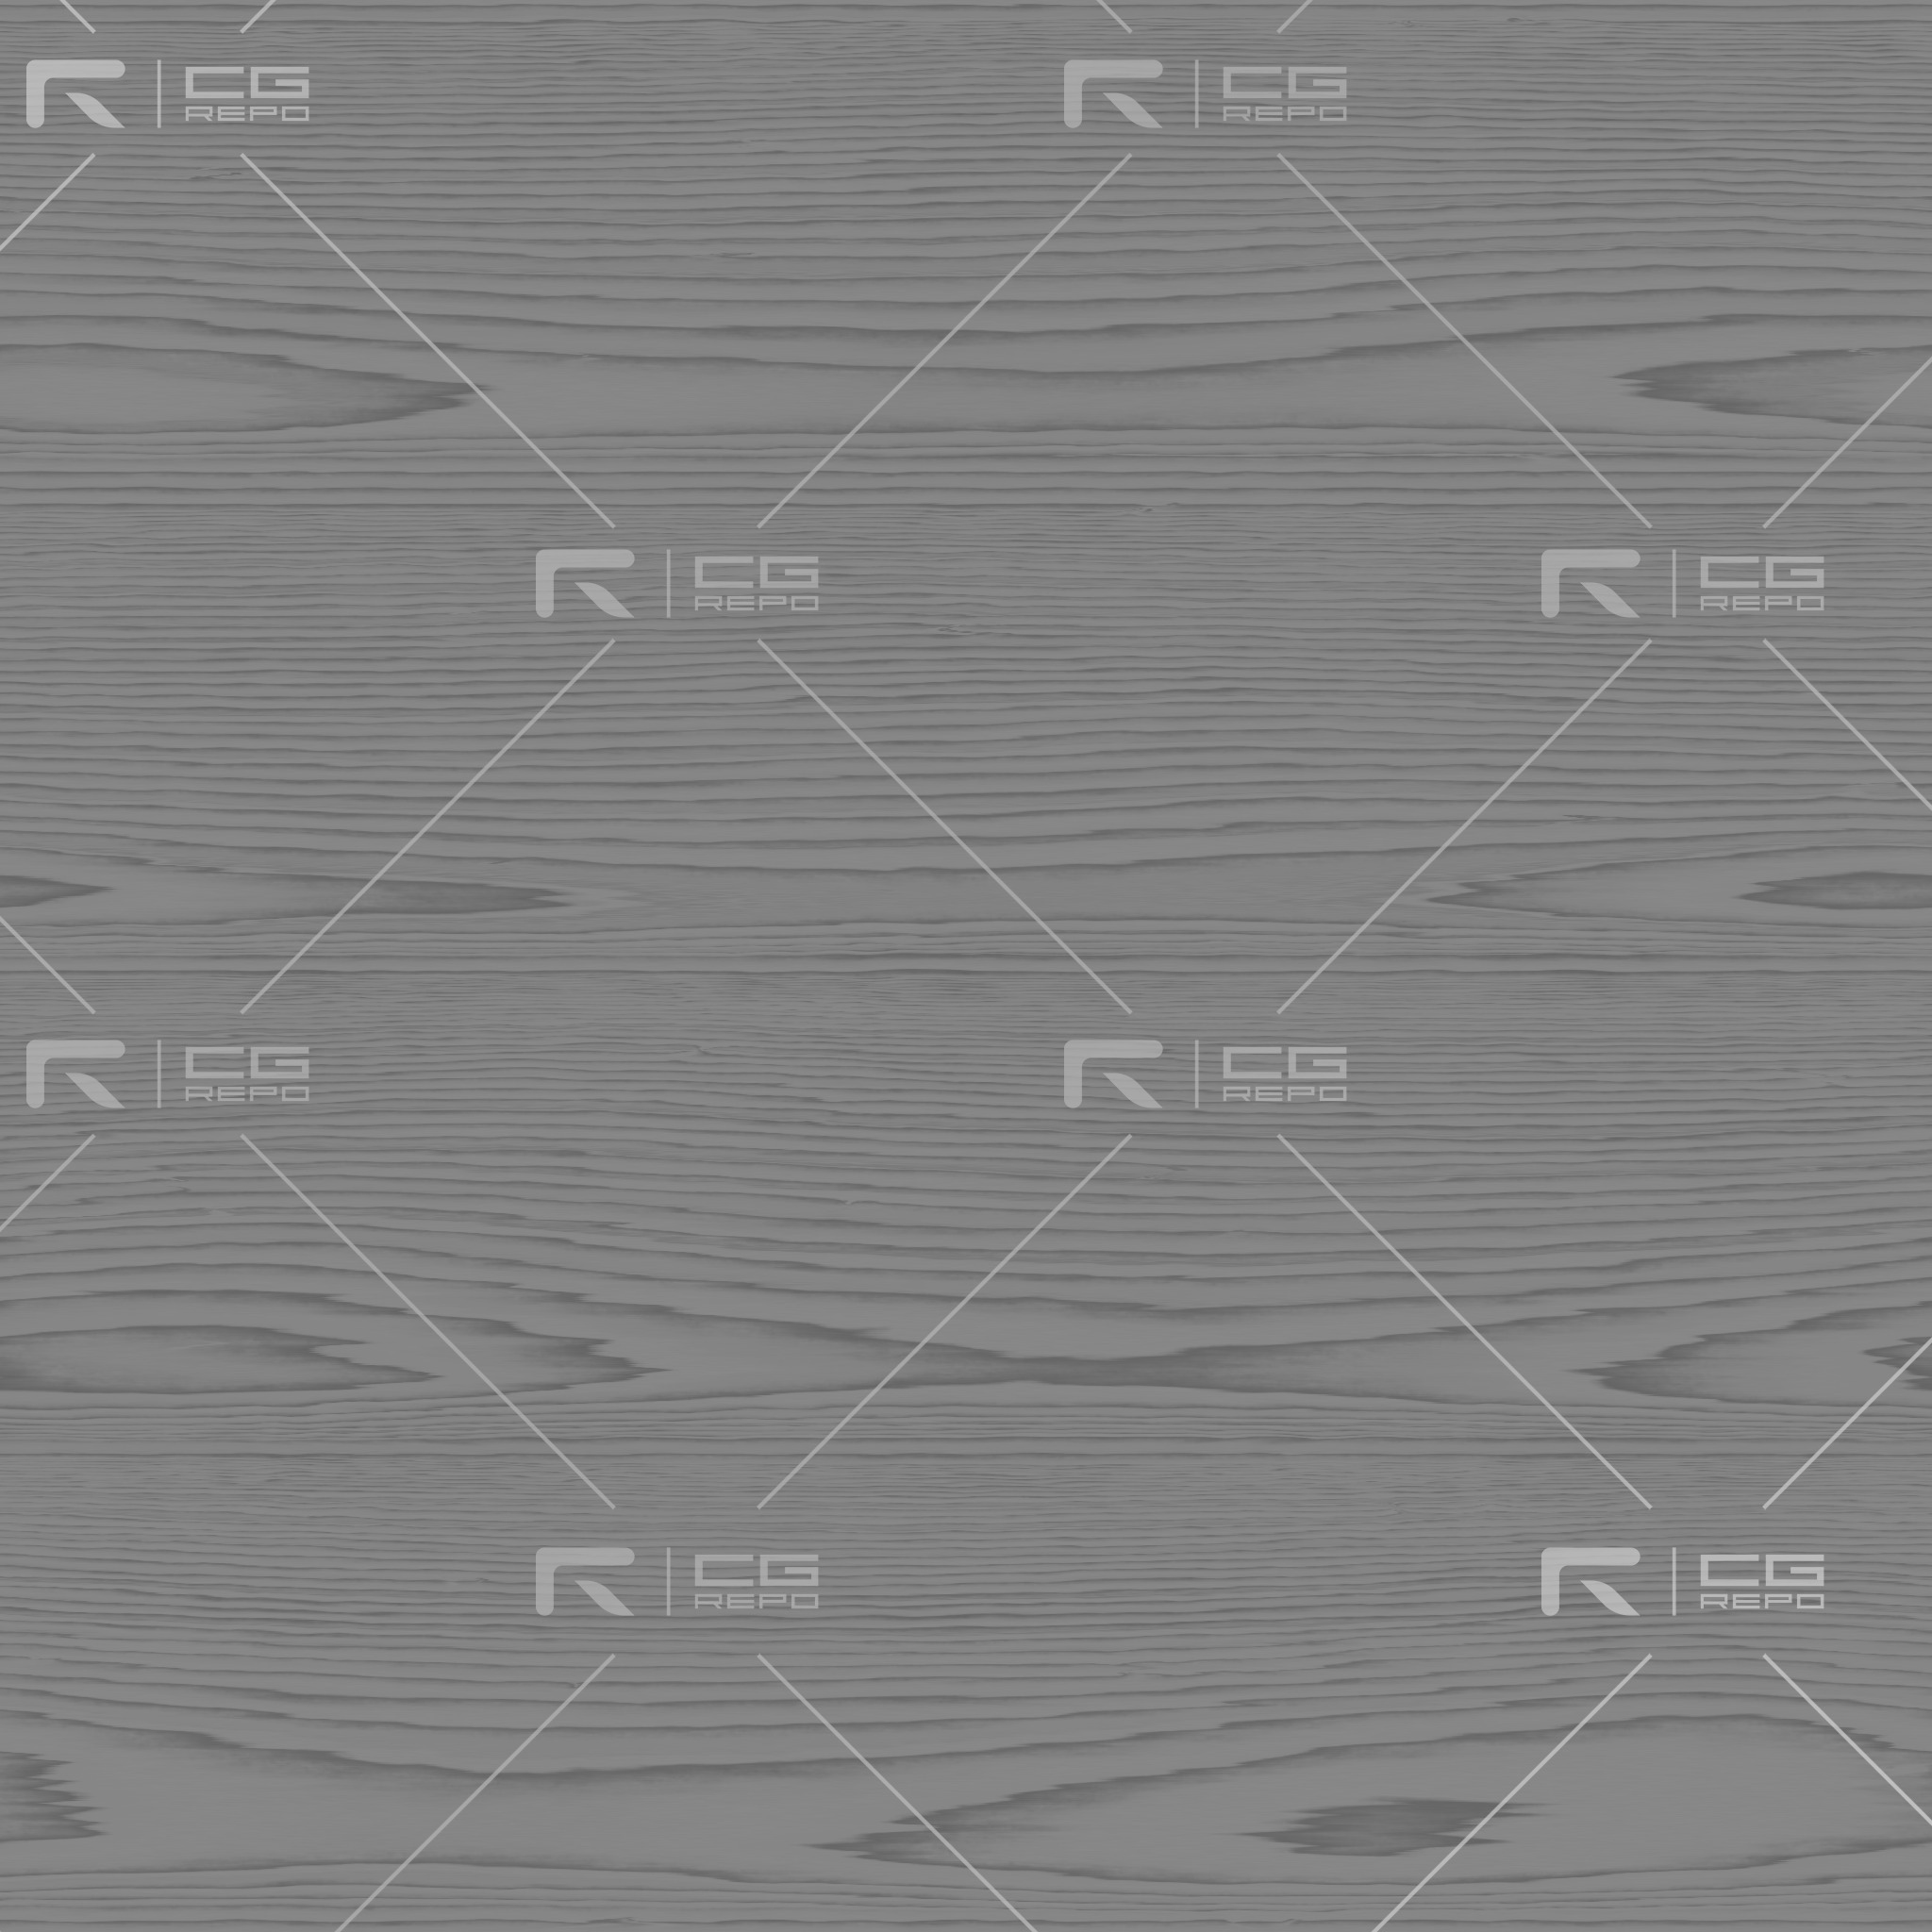 Birch - PlyWood - Flat Roughness Texture